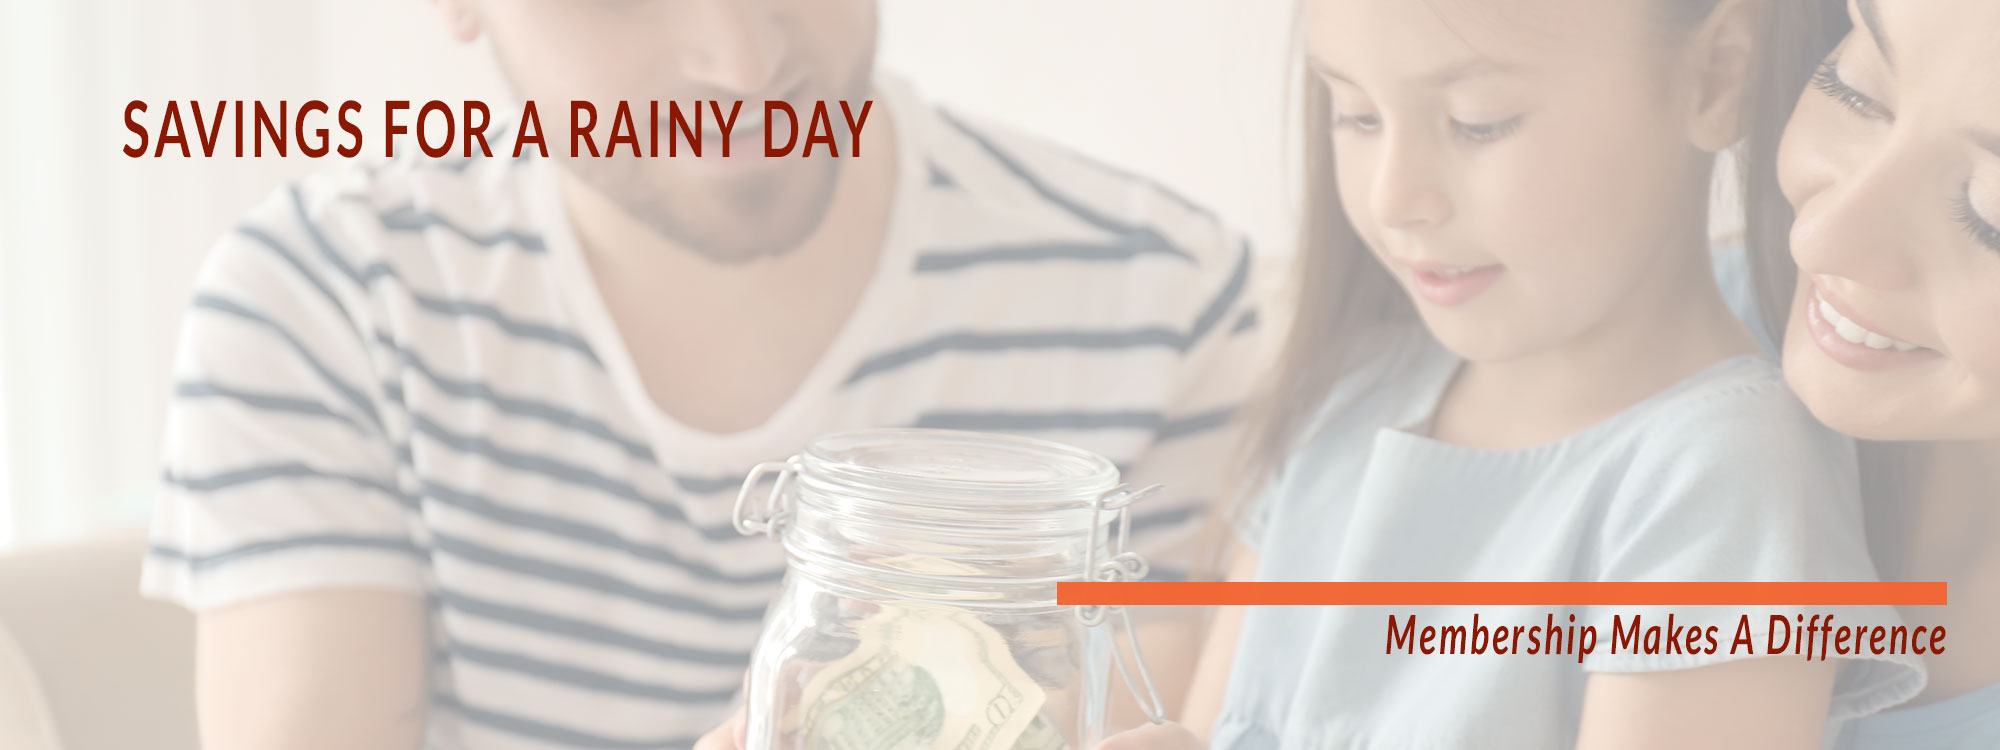 Savings for a rainy day. Membership Makes a Difference.